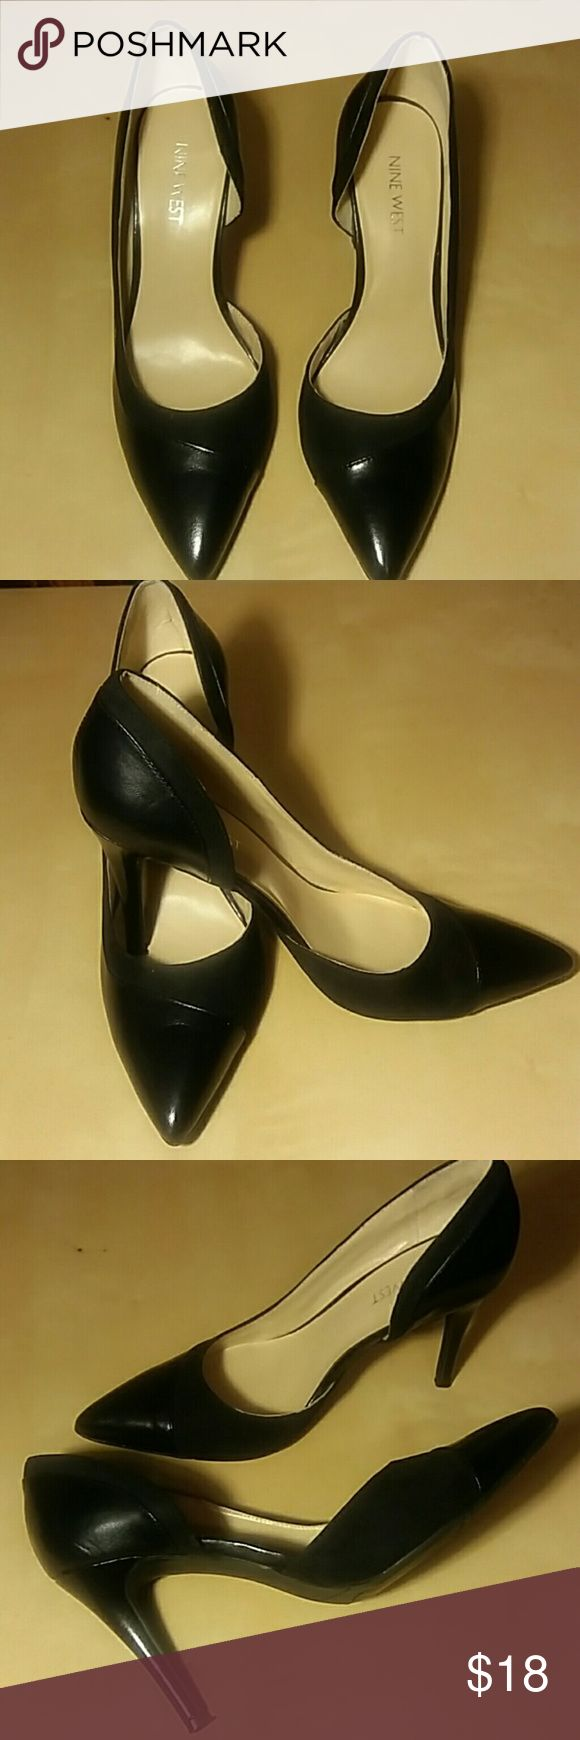 "Nine West Heels Nine West Heels  4.5"" heel Nine West Shoes Heels"